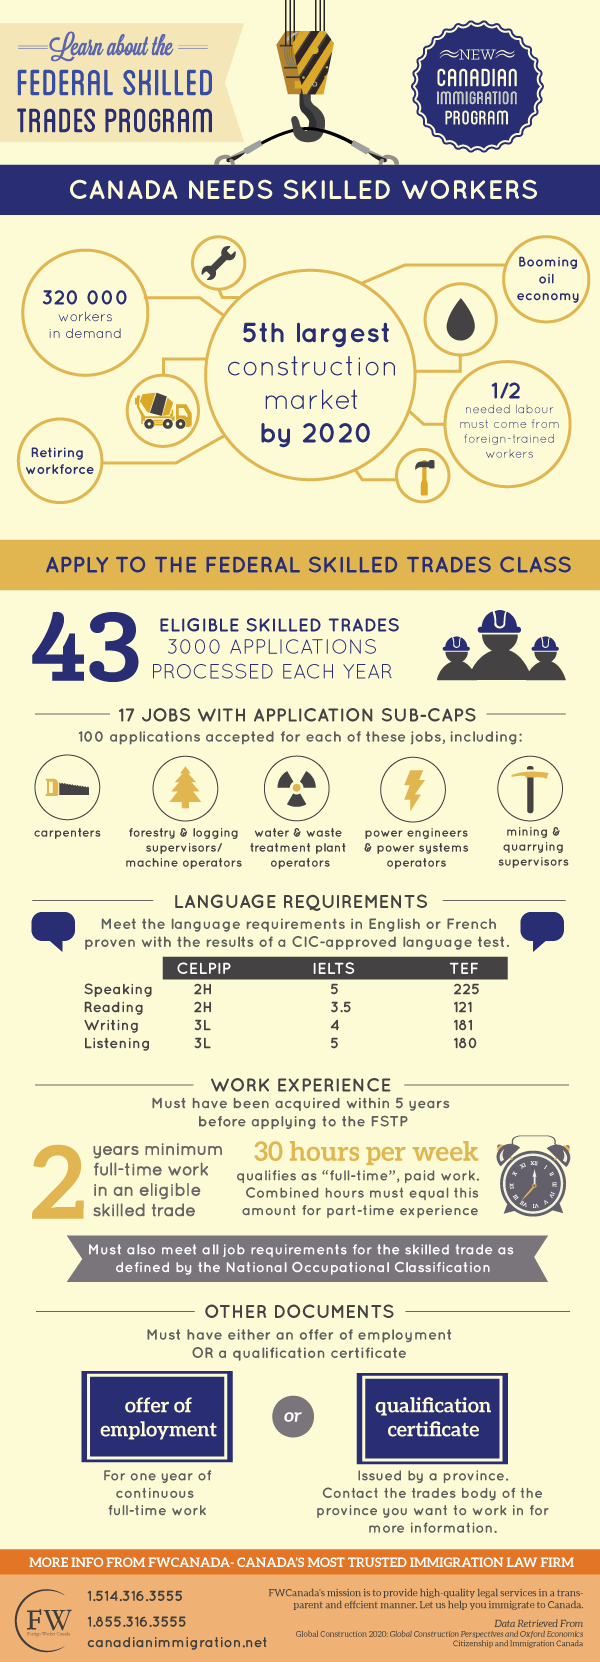 learn-about-canadas-federal-skilled-trades-program_52137b0f86378